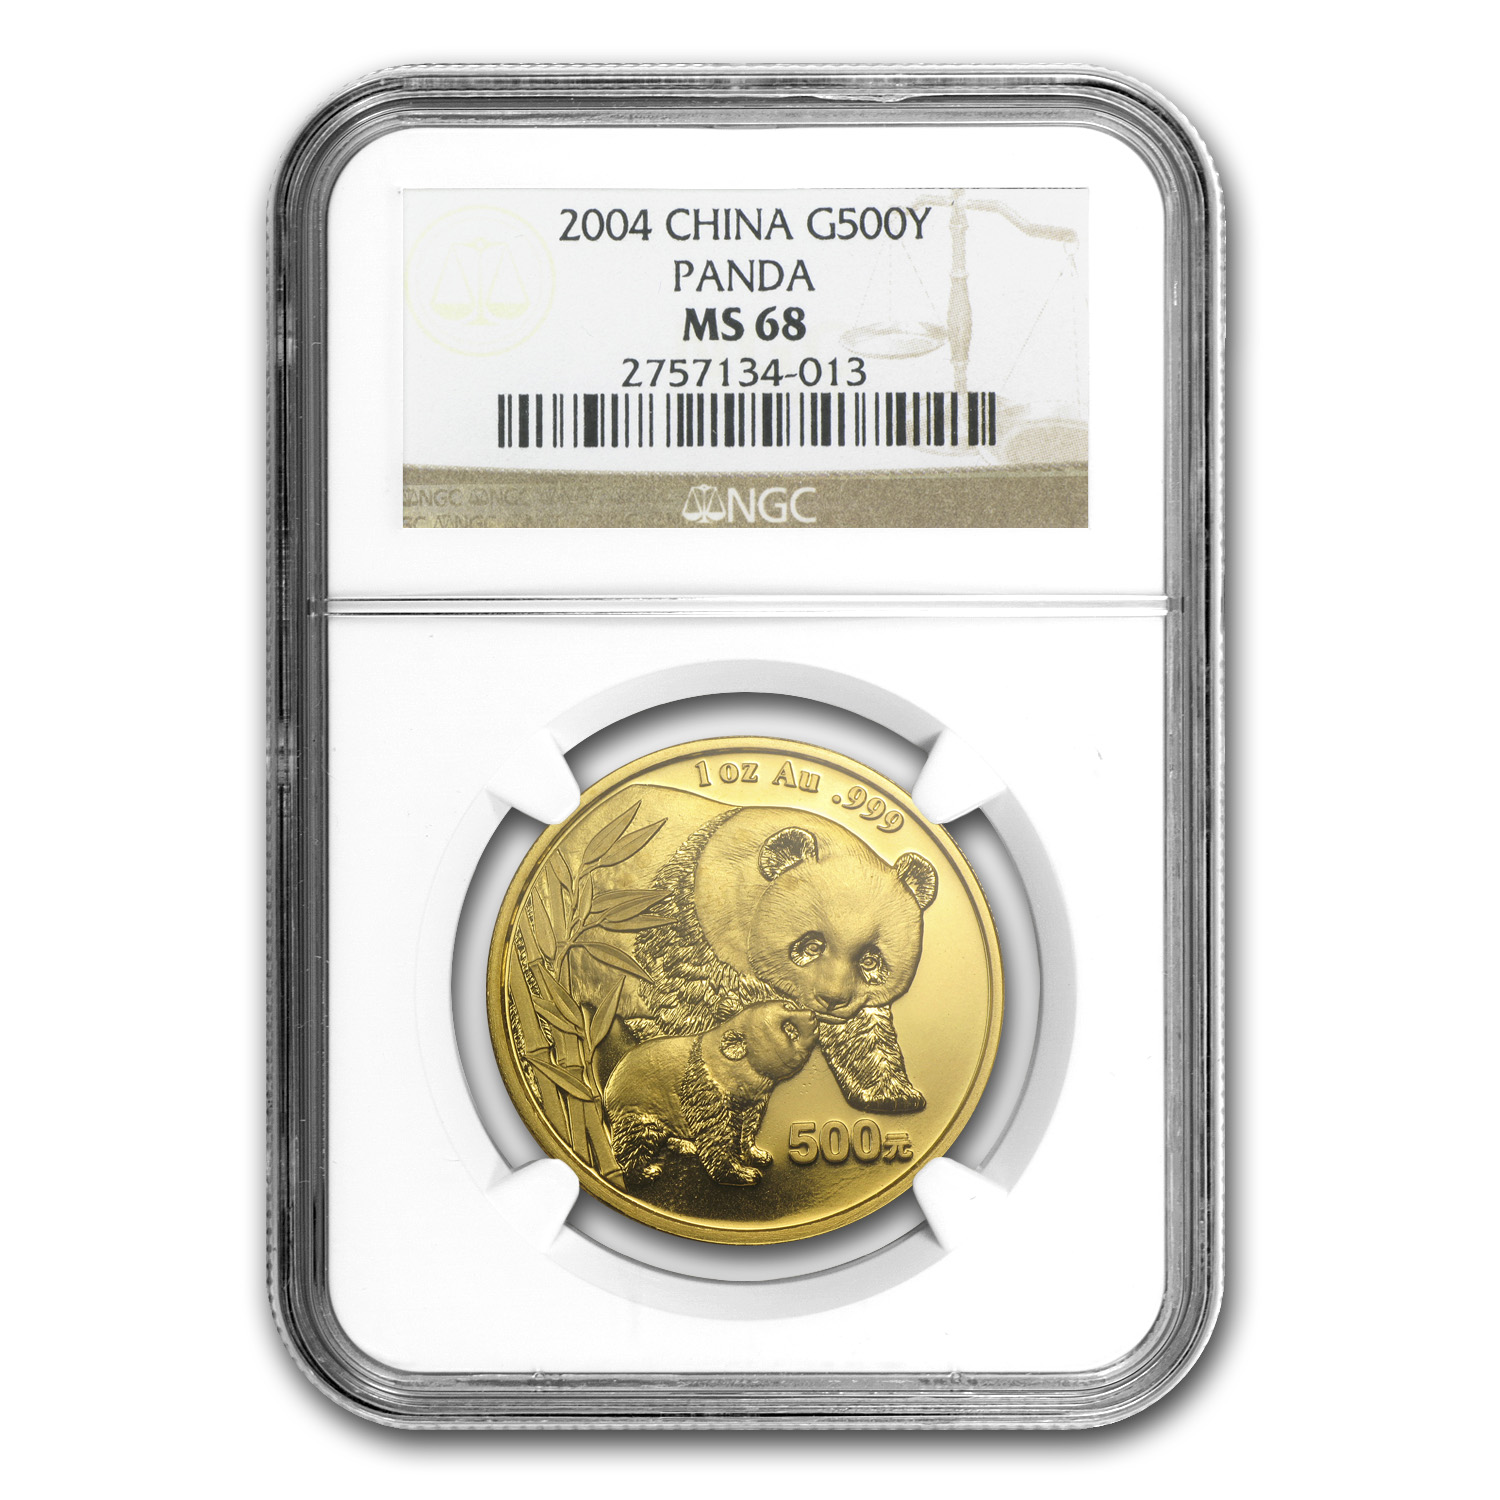 2004 China 1 oz Gold Panda MS-68 NGC